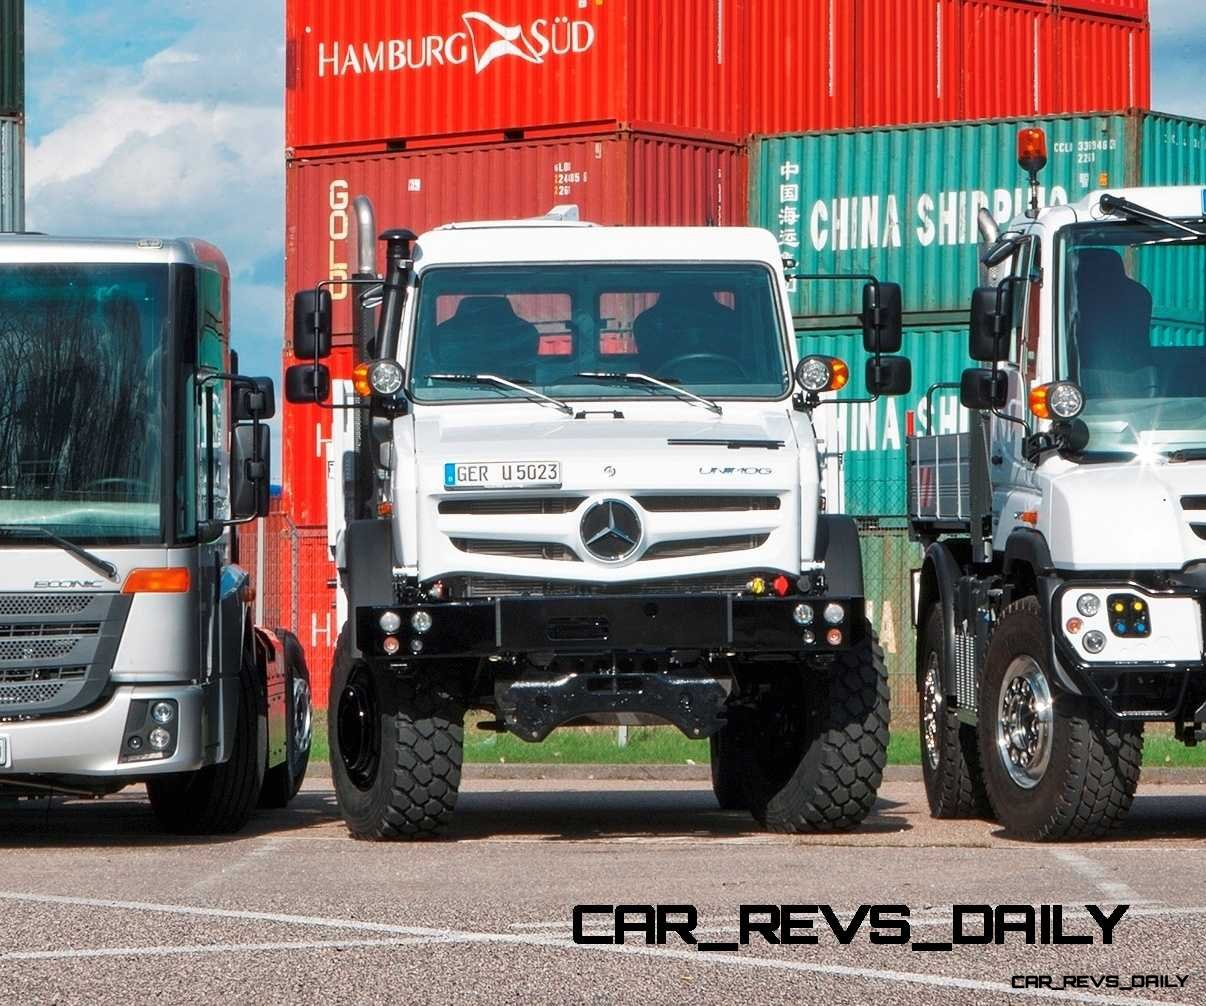 New Unimog U5023 - Review CarRevsDaily